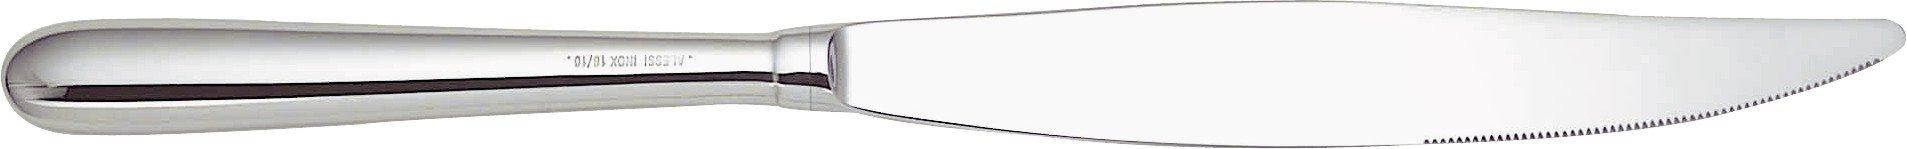 Alessi''Caccia'' Monobloc Dessert Knives in Steel Aisi 420 Mirror Polished (Set of 6), Silver